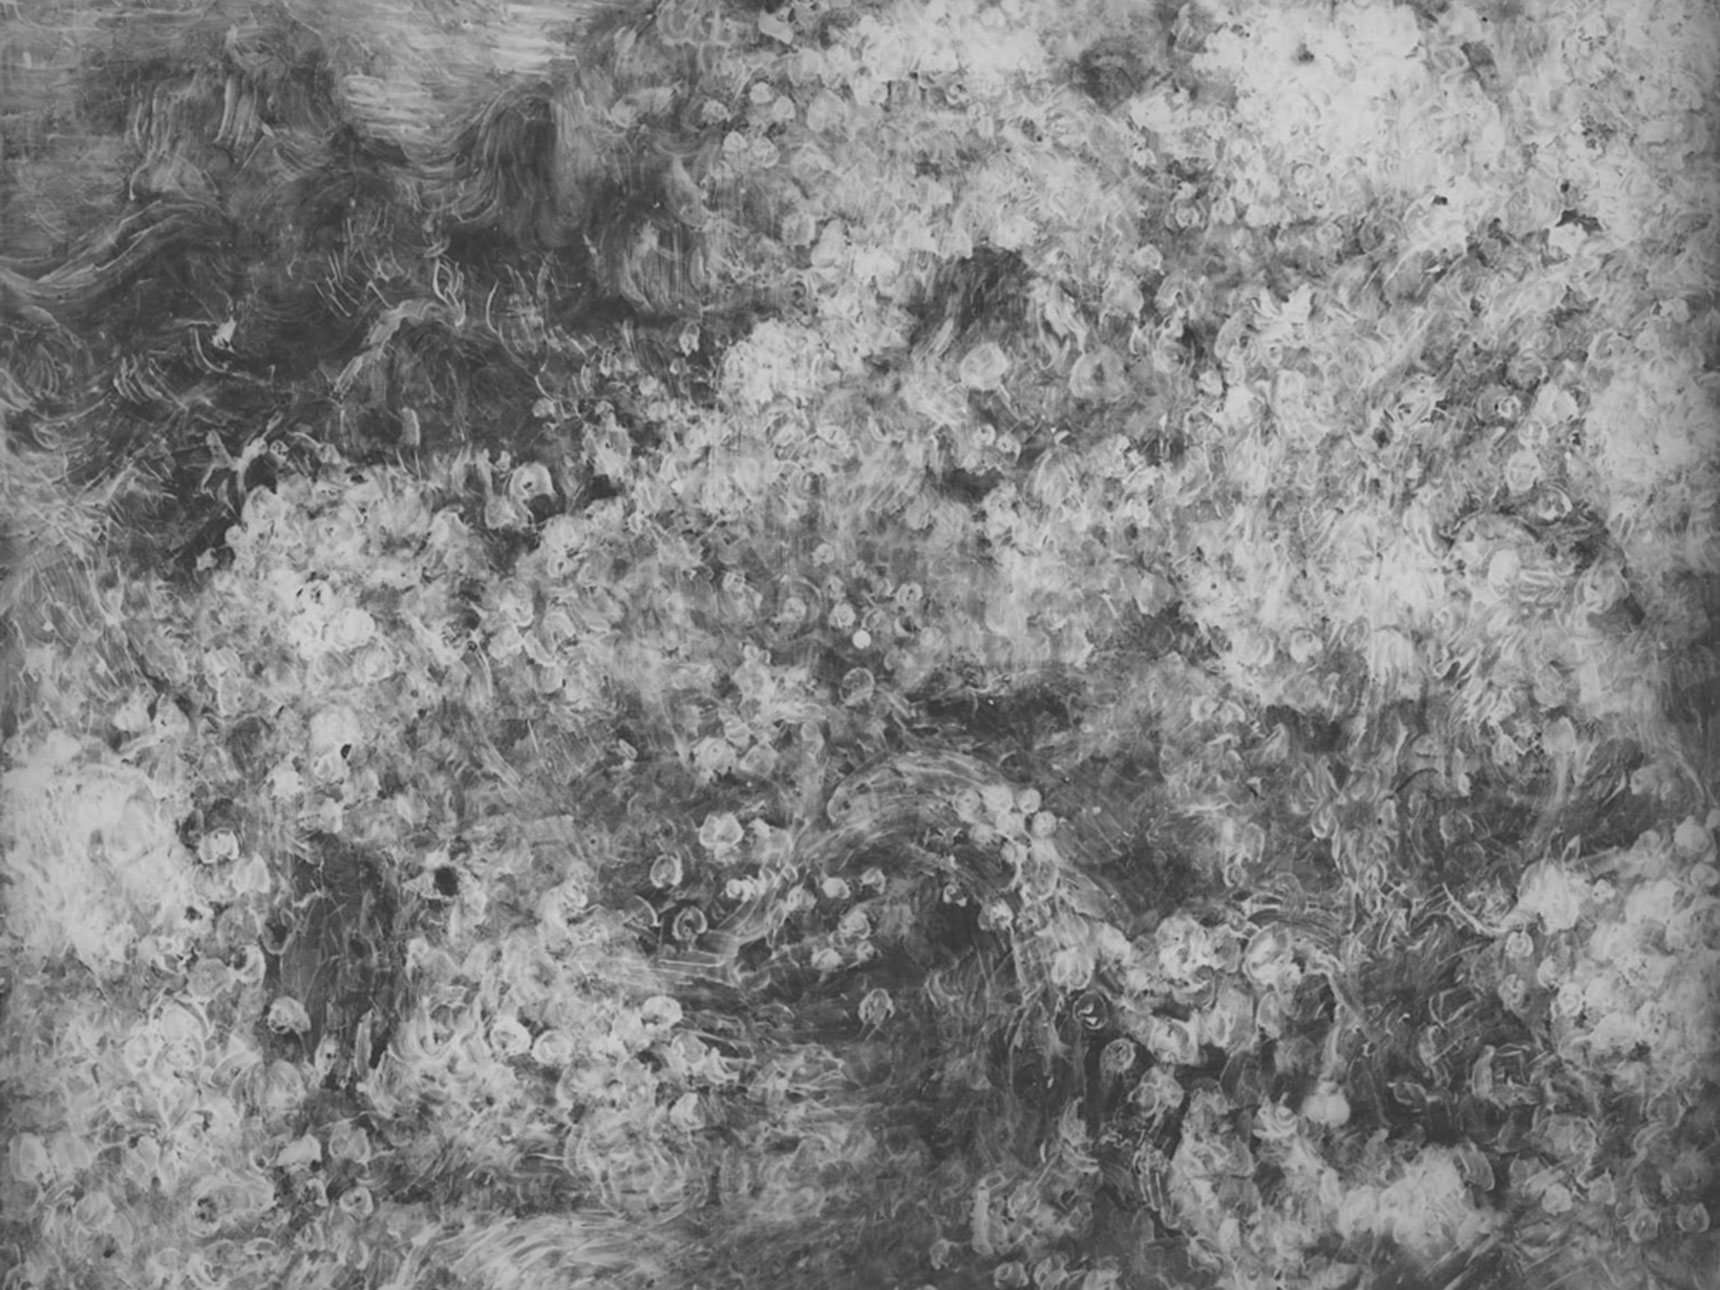 X-ray view of van Gogh's painting, Ravine, revealing drawing underneath paint